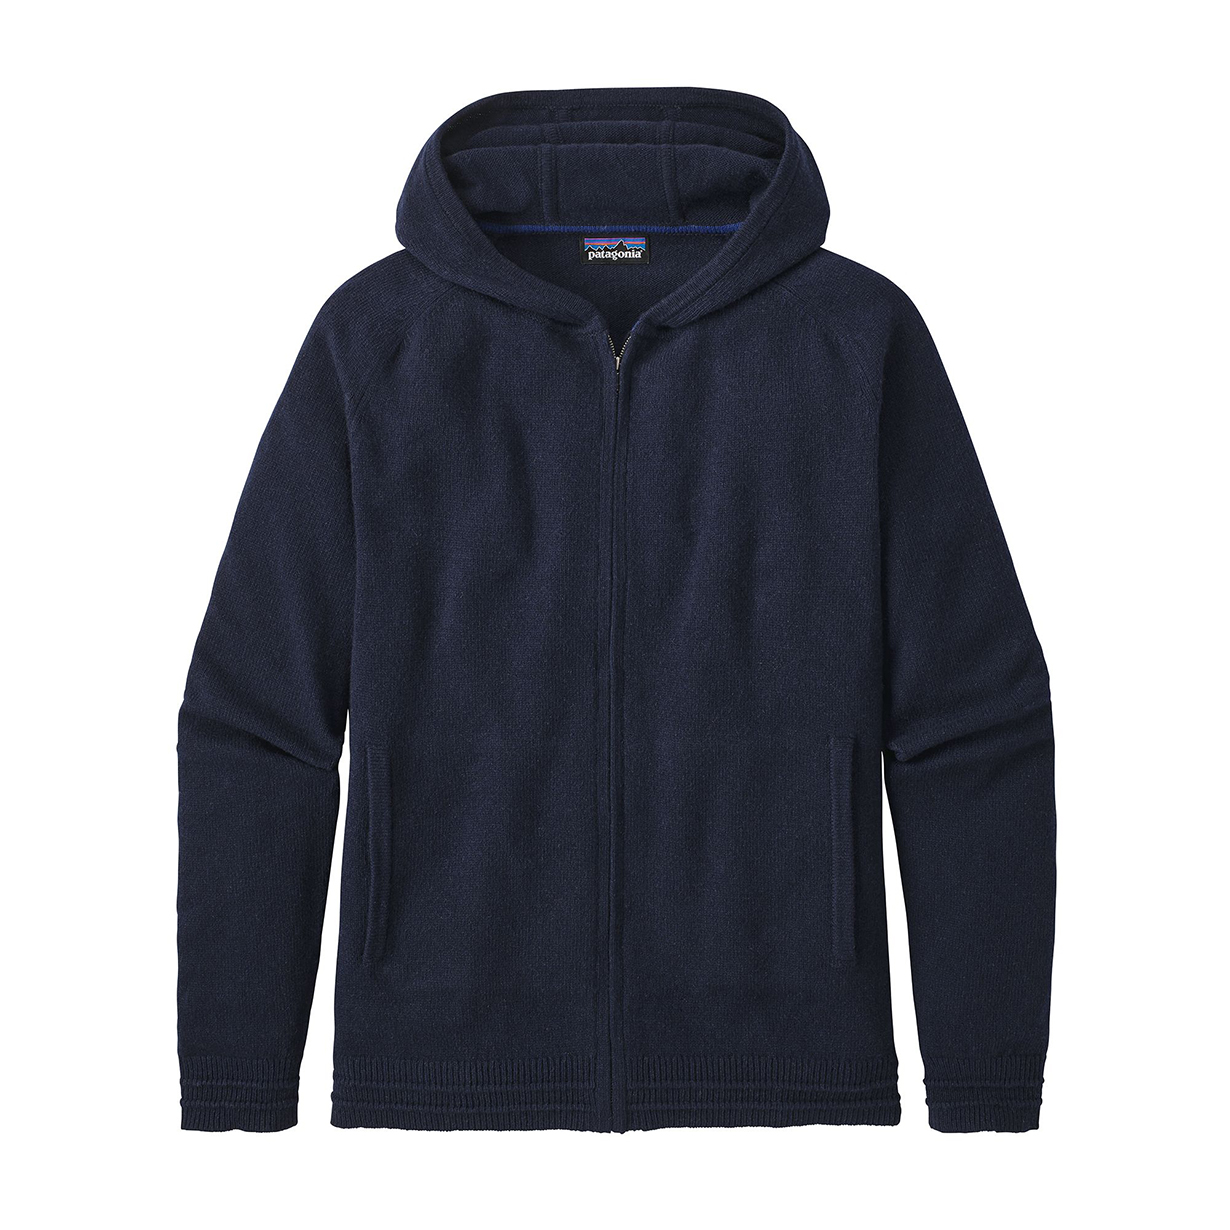 Blister's 17/18 Holiday Gift Guide